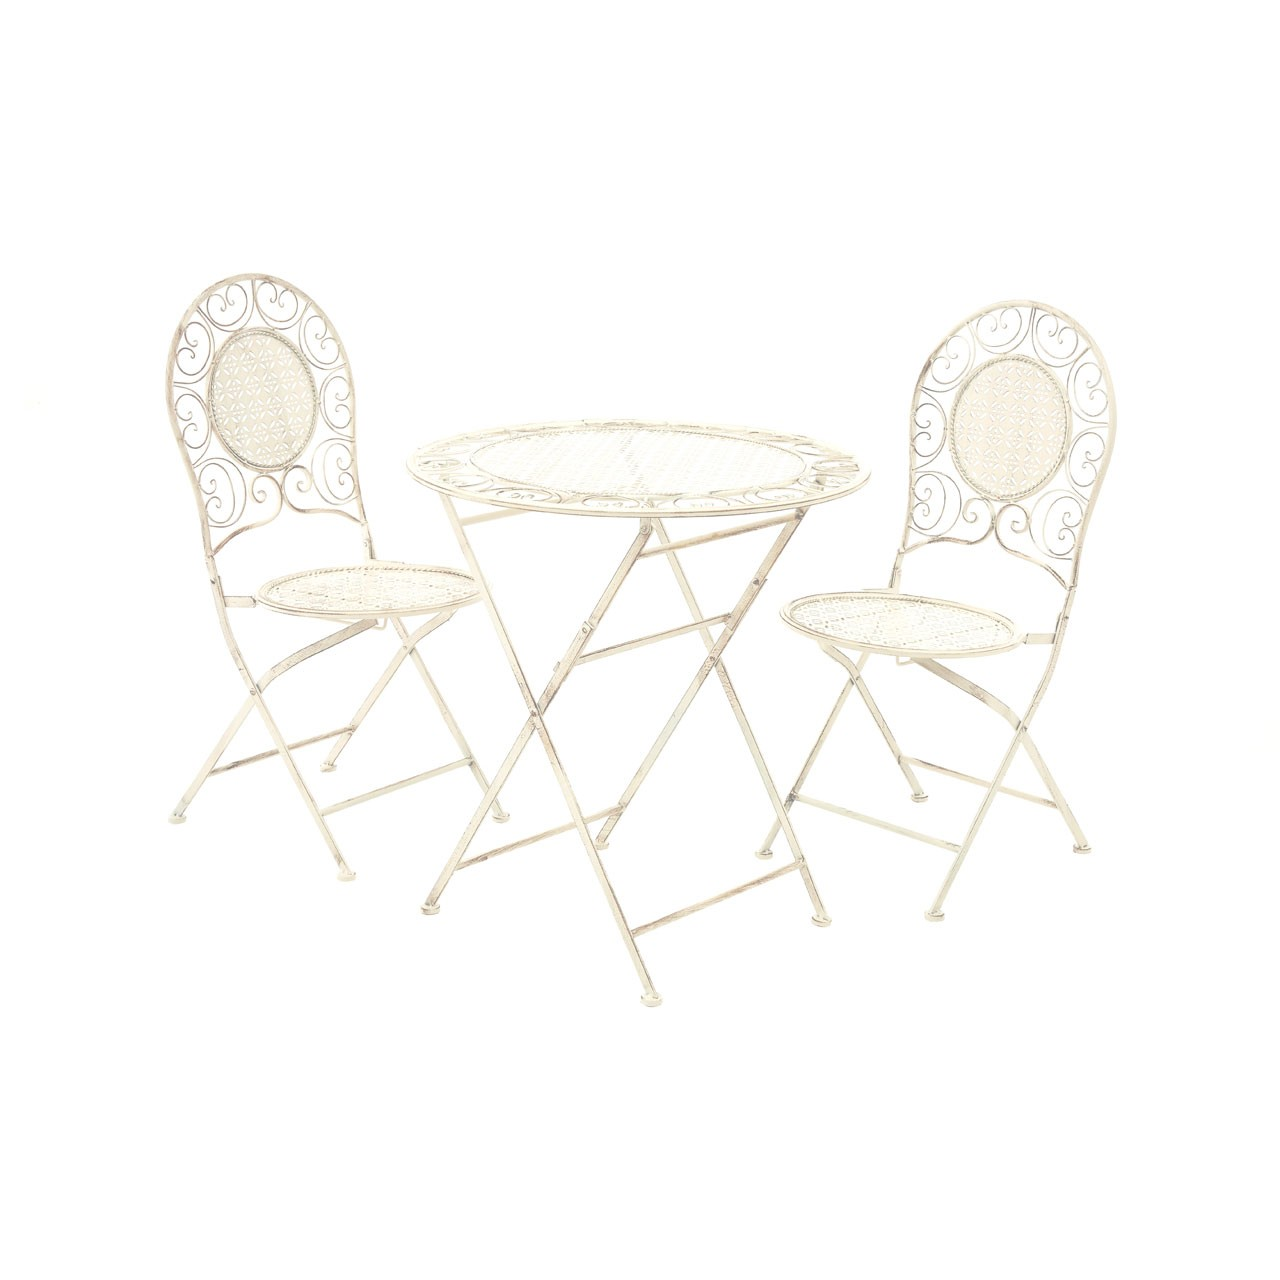 Finchwood Jardin 3pc Table Set - Cream